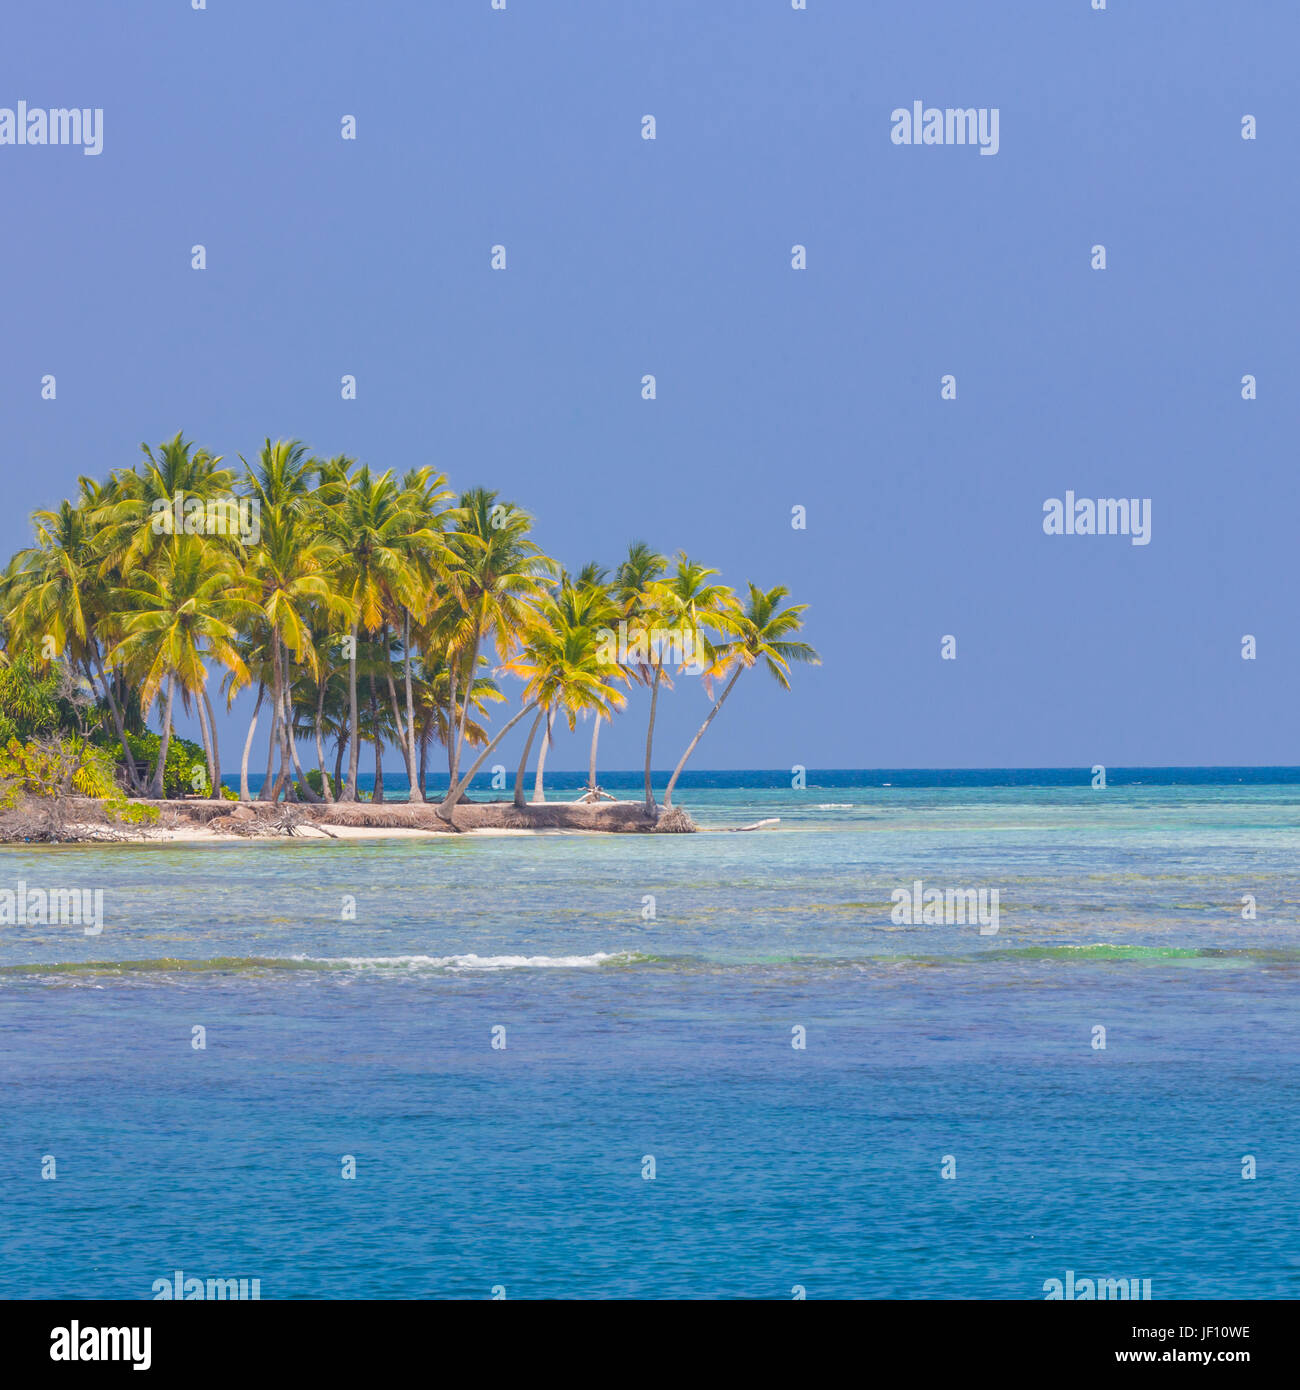 Luxury summer vacation and holiday concept background. Summer beach nature and tropical island banner Stock Photo